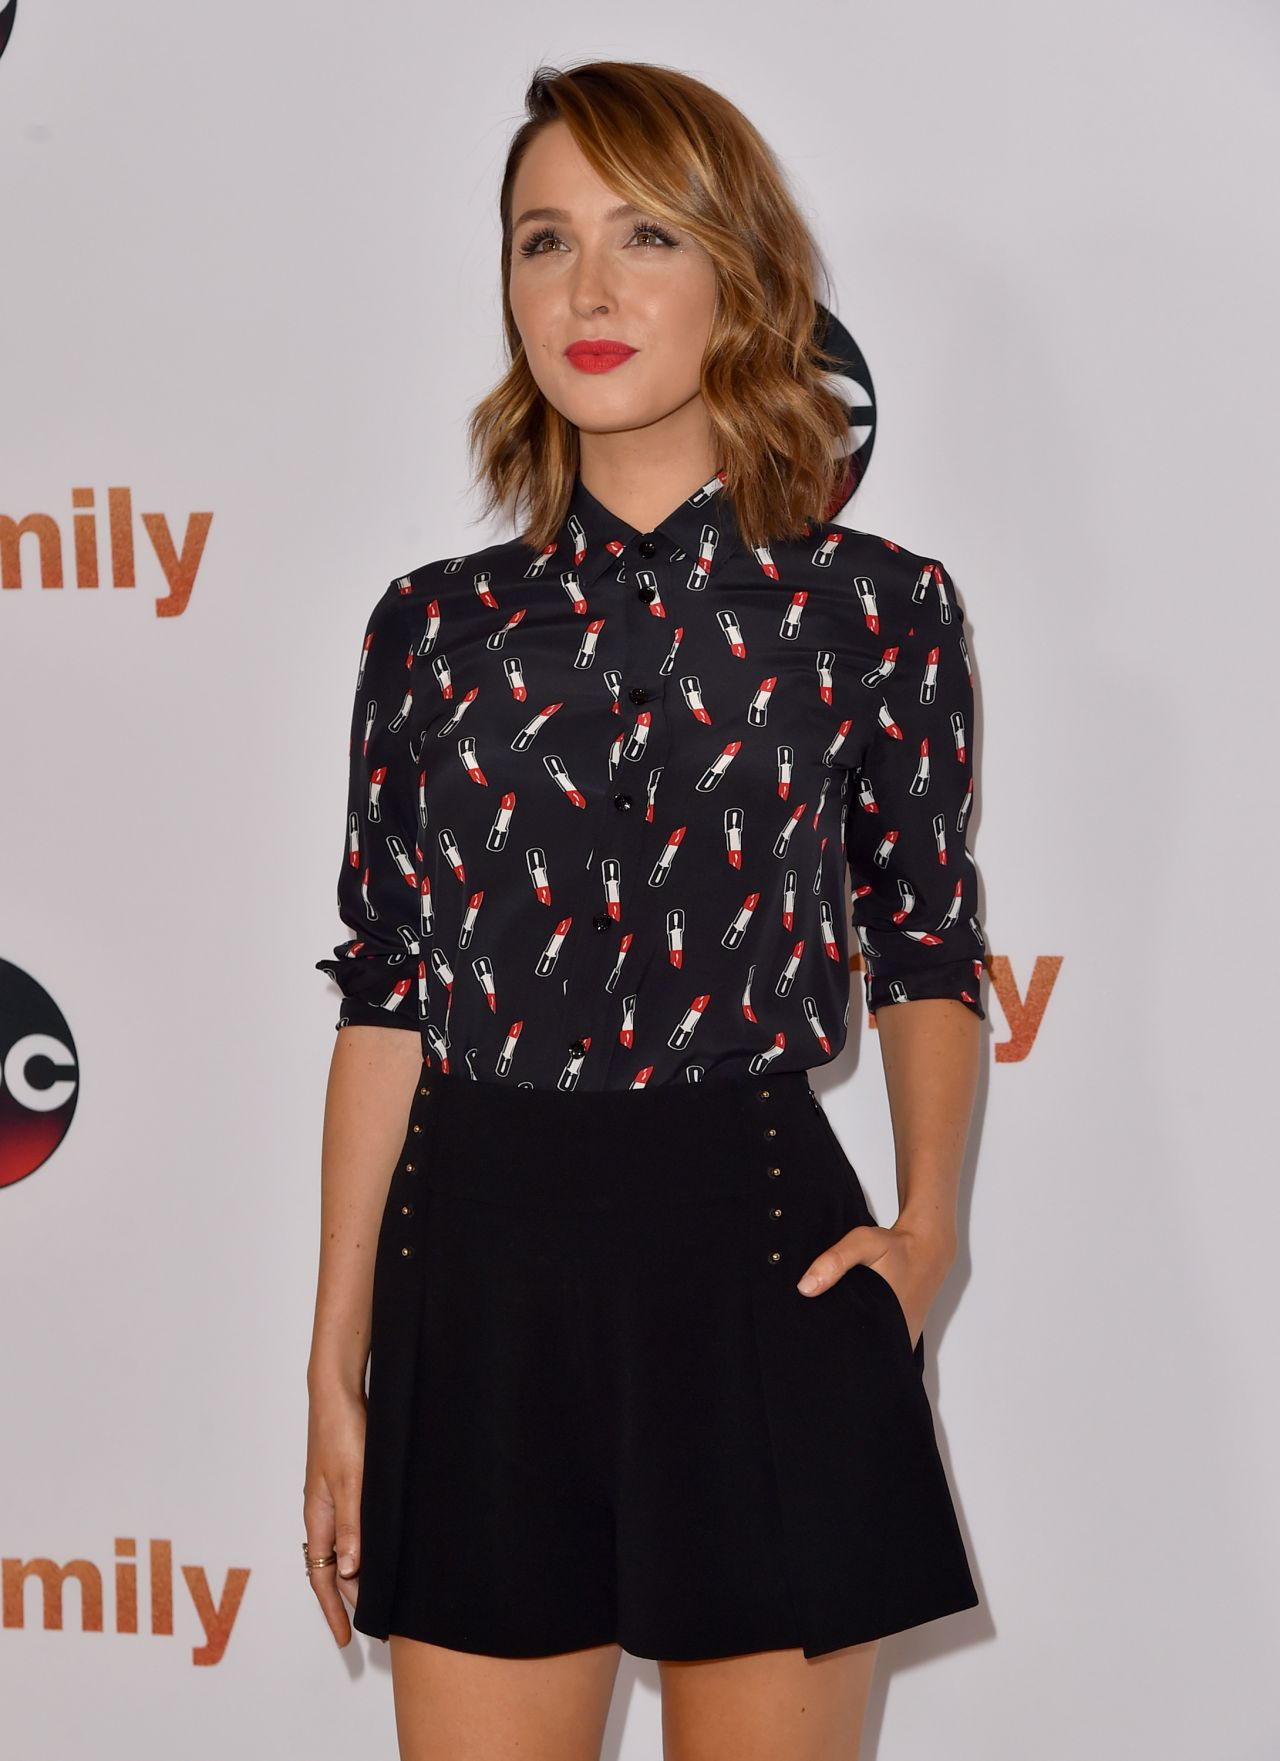 camilla-luddington-disney-abc-2015-summer-tca-press-tour-photo-call-in-beverly-hills_5